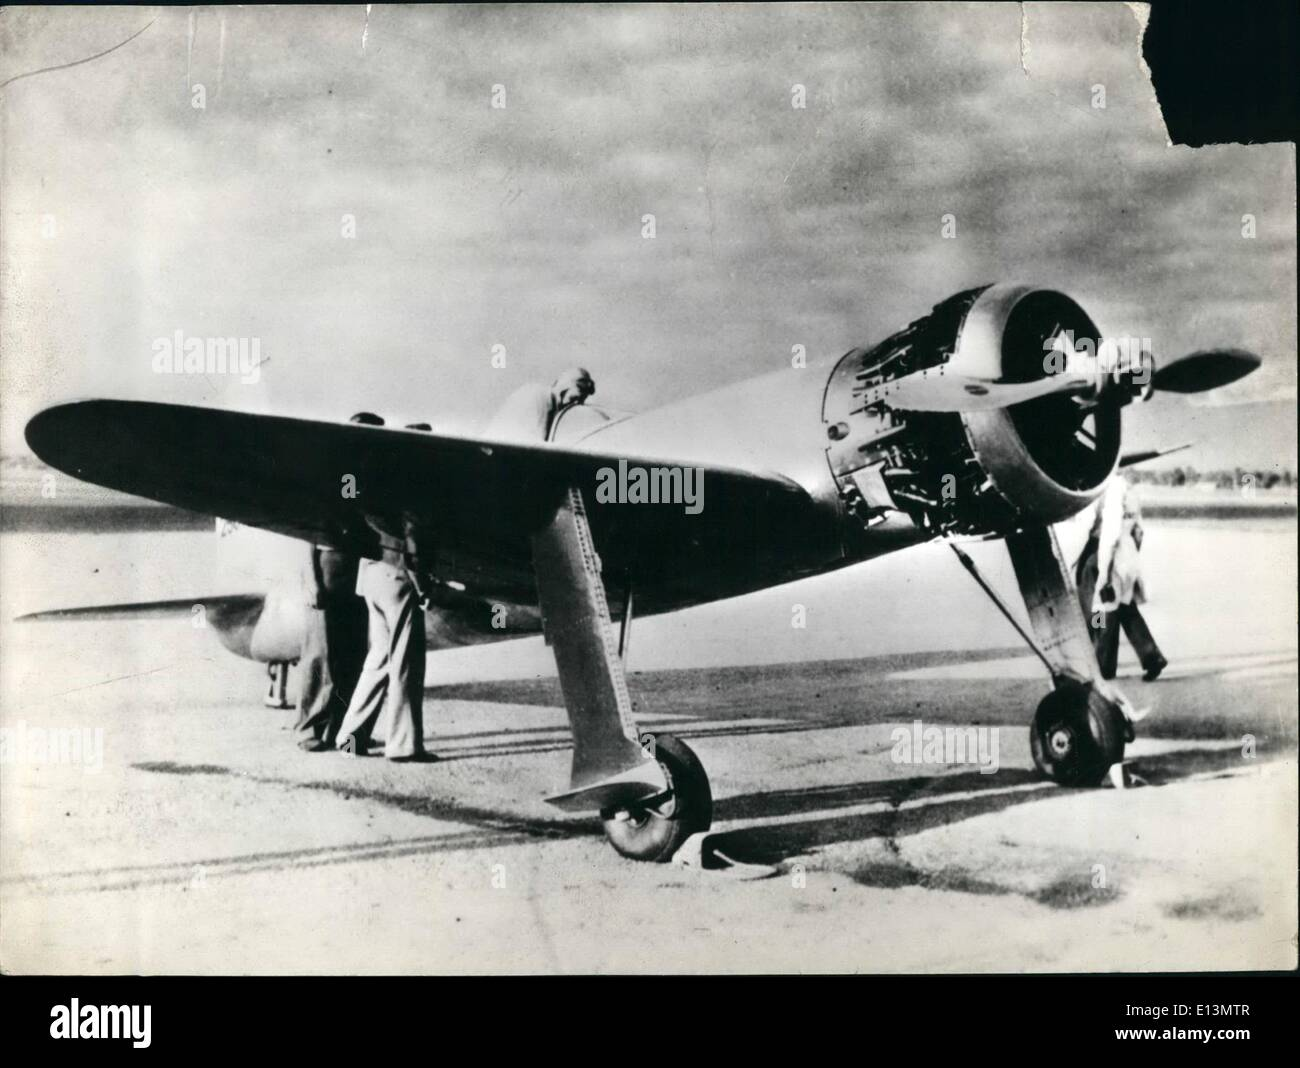 Mar. 22, 2012 - Producer and Plane in which he set unofficial speed mark: Los Angeles, Calif. Howard Hughes, millionaire Motion - Stock Image